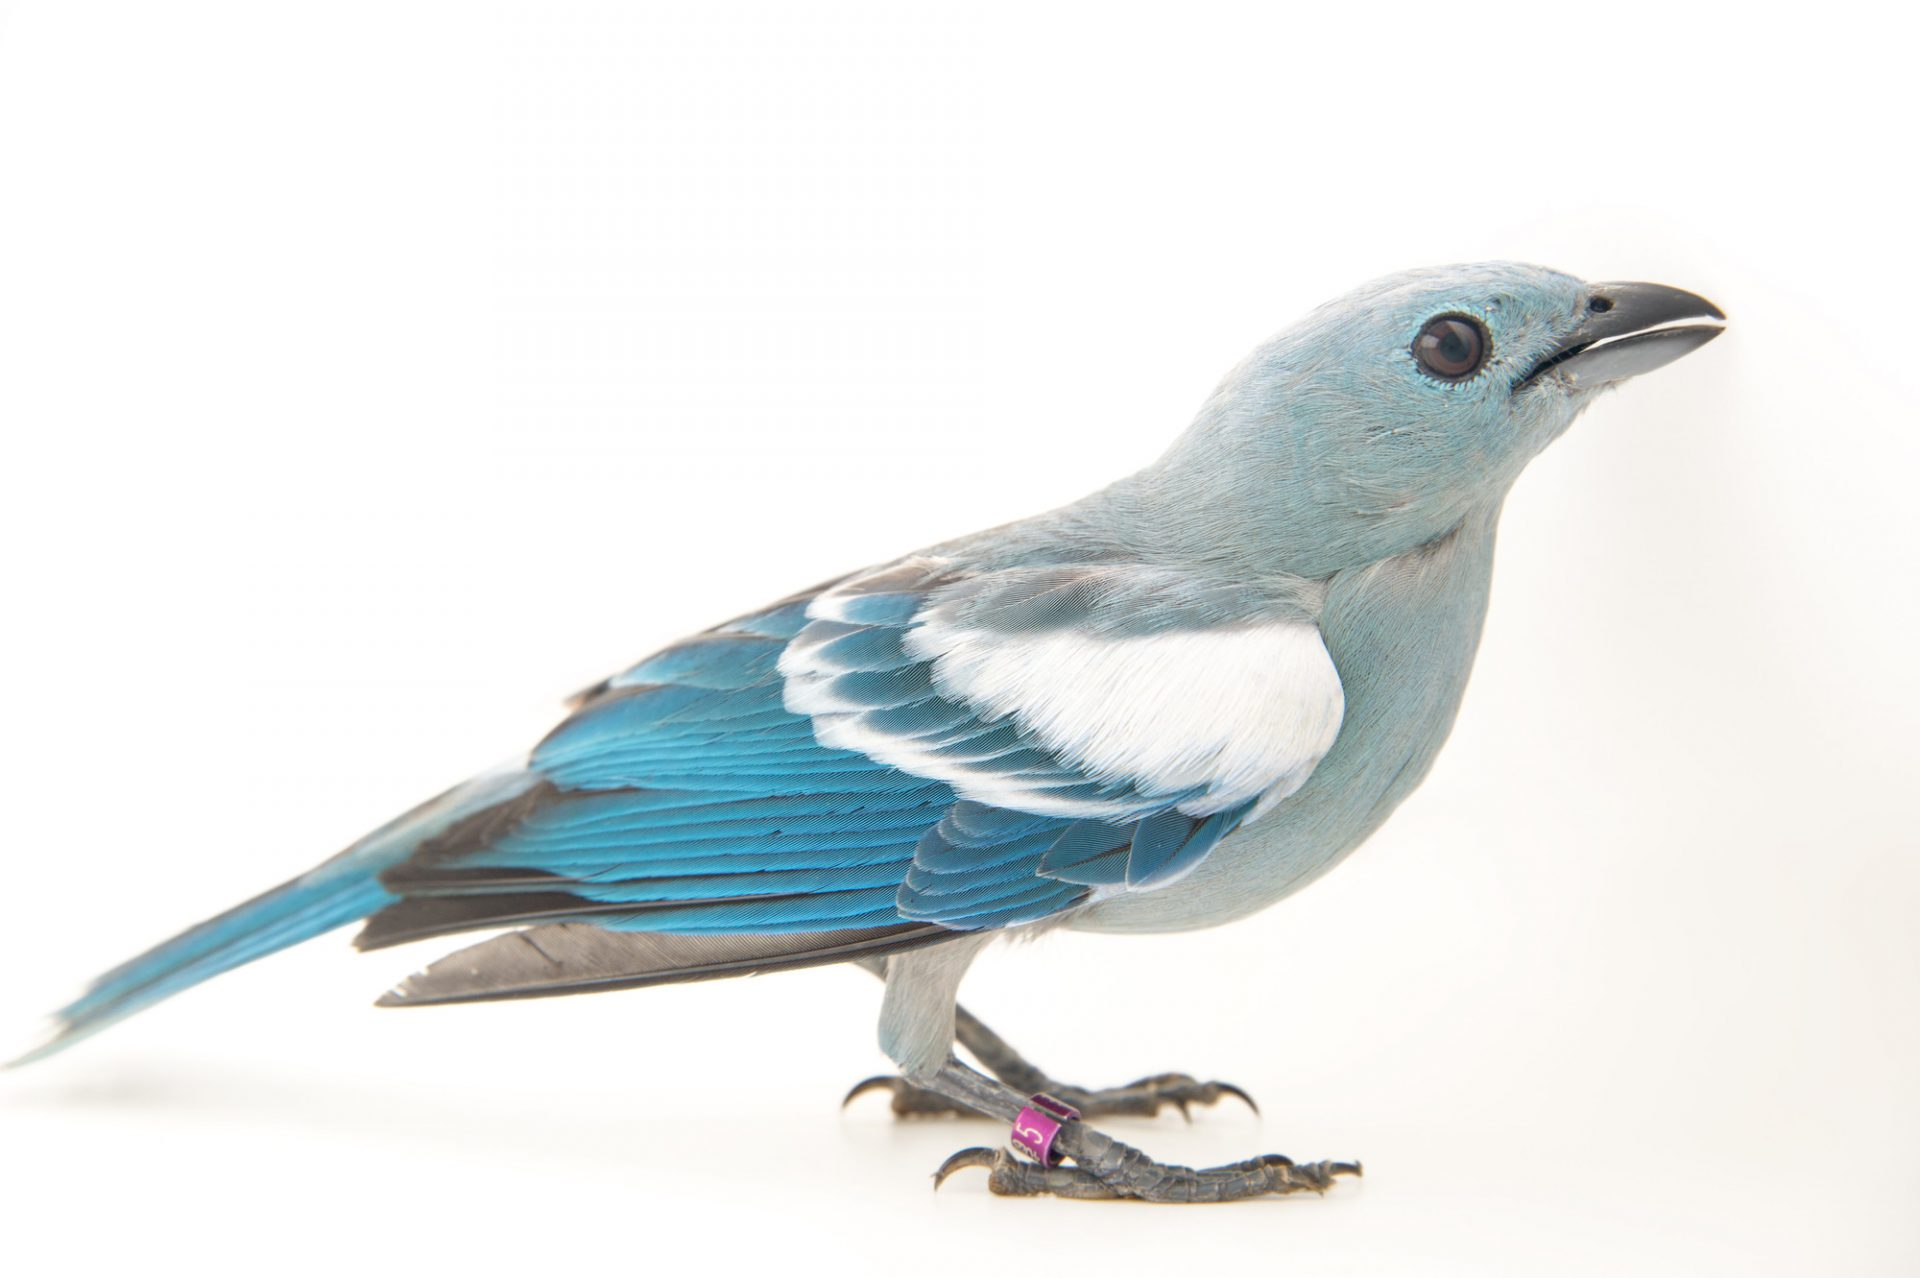 A blue-grey tanager (Tangara episcopus media) at the National Aviary breeding center in Palmar, Colombia.